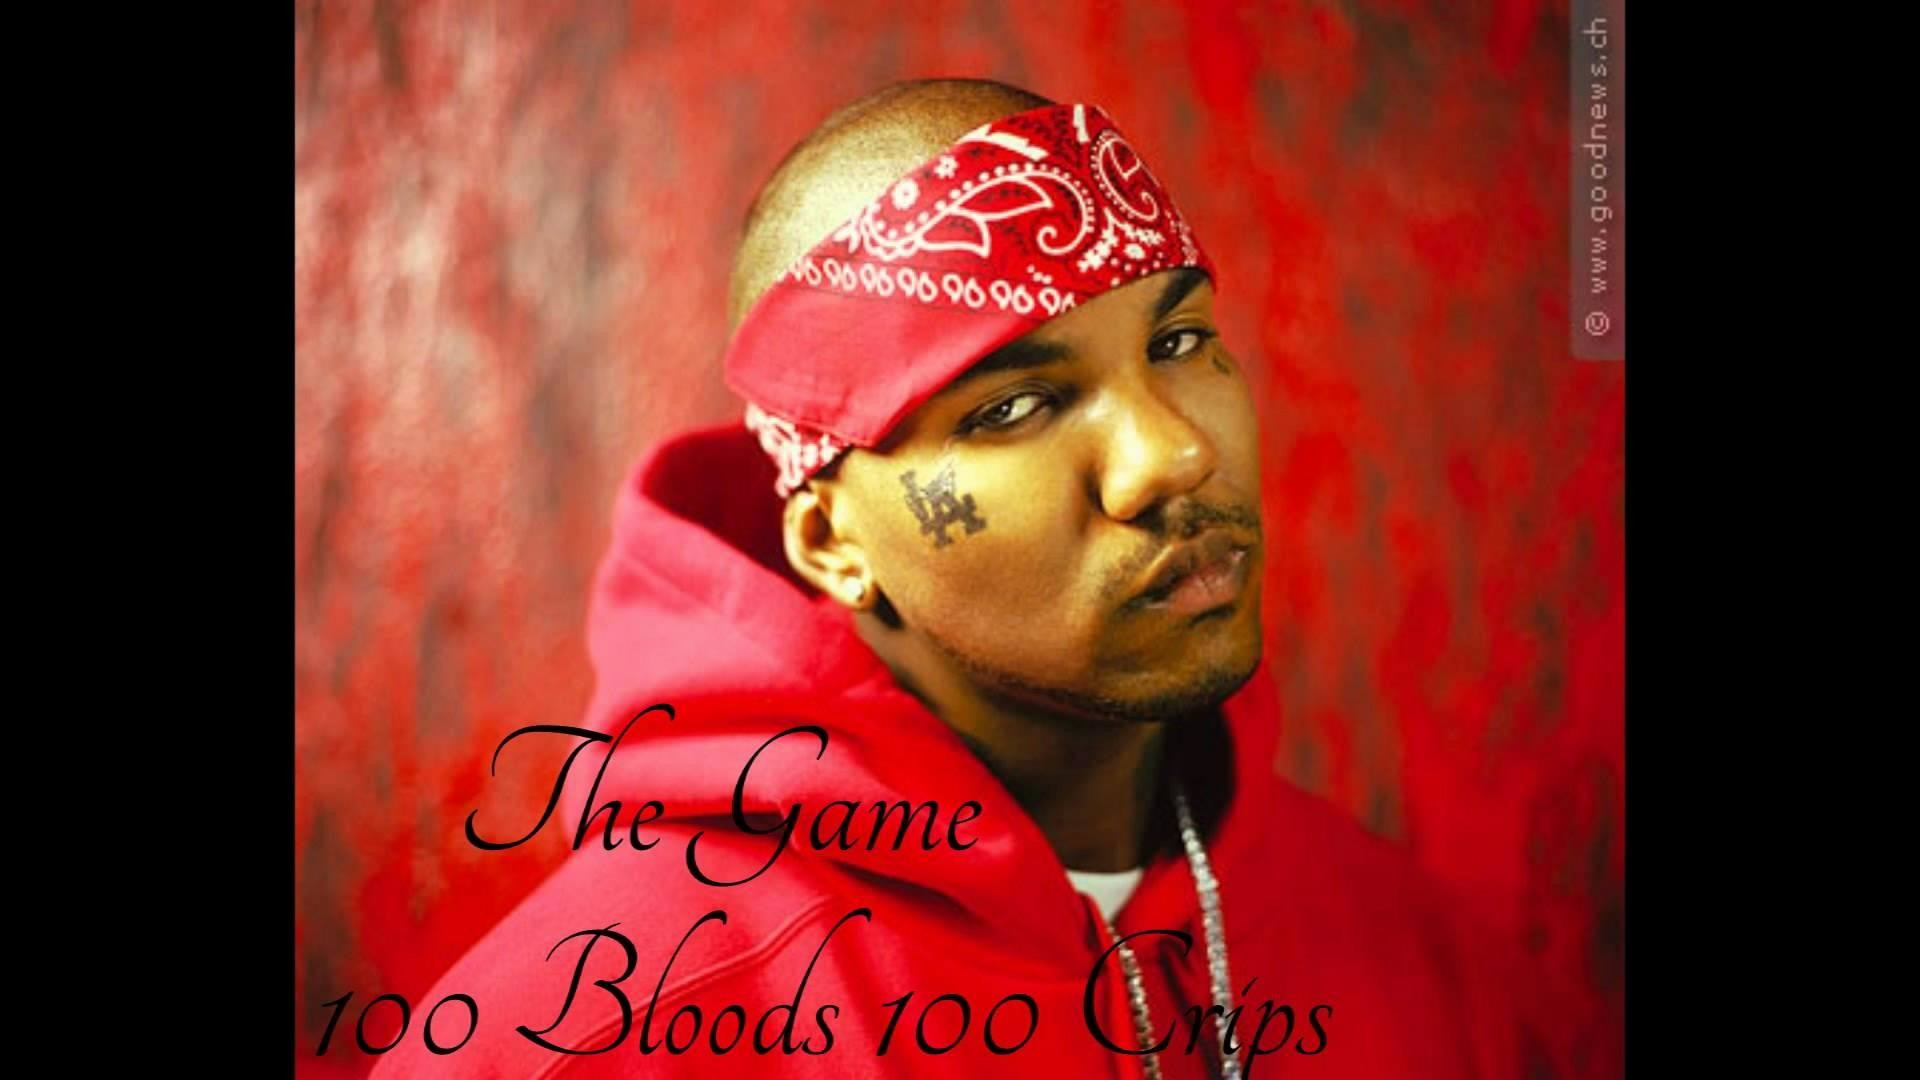 Red Rag Bloods: Crip Gang Wallpapers For Android Devices (43+ Images